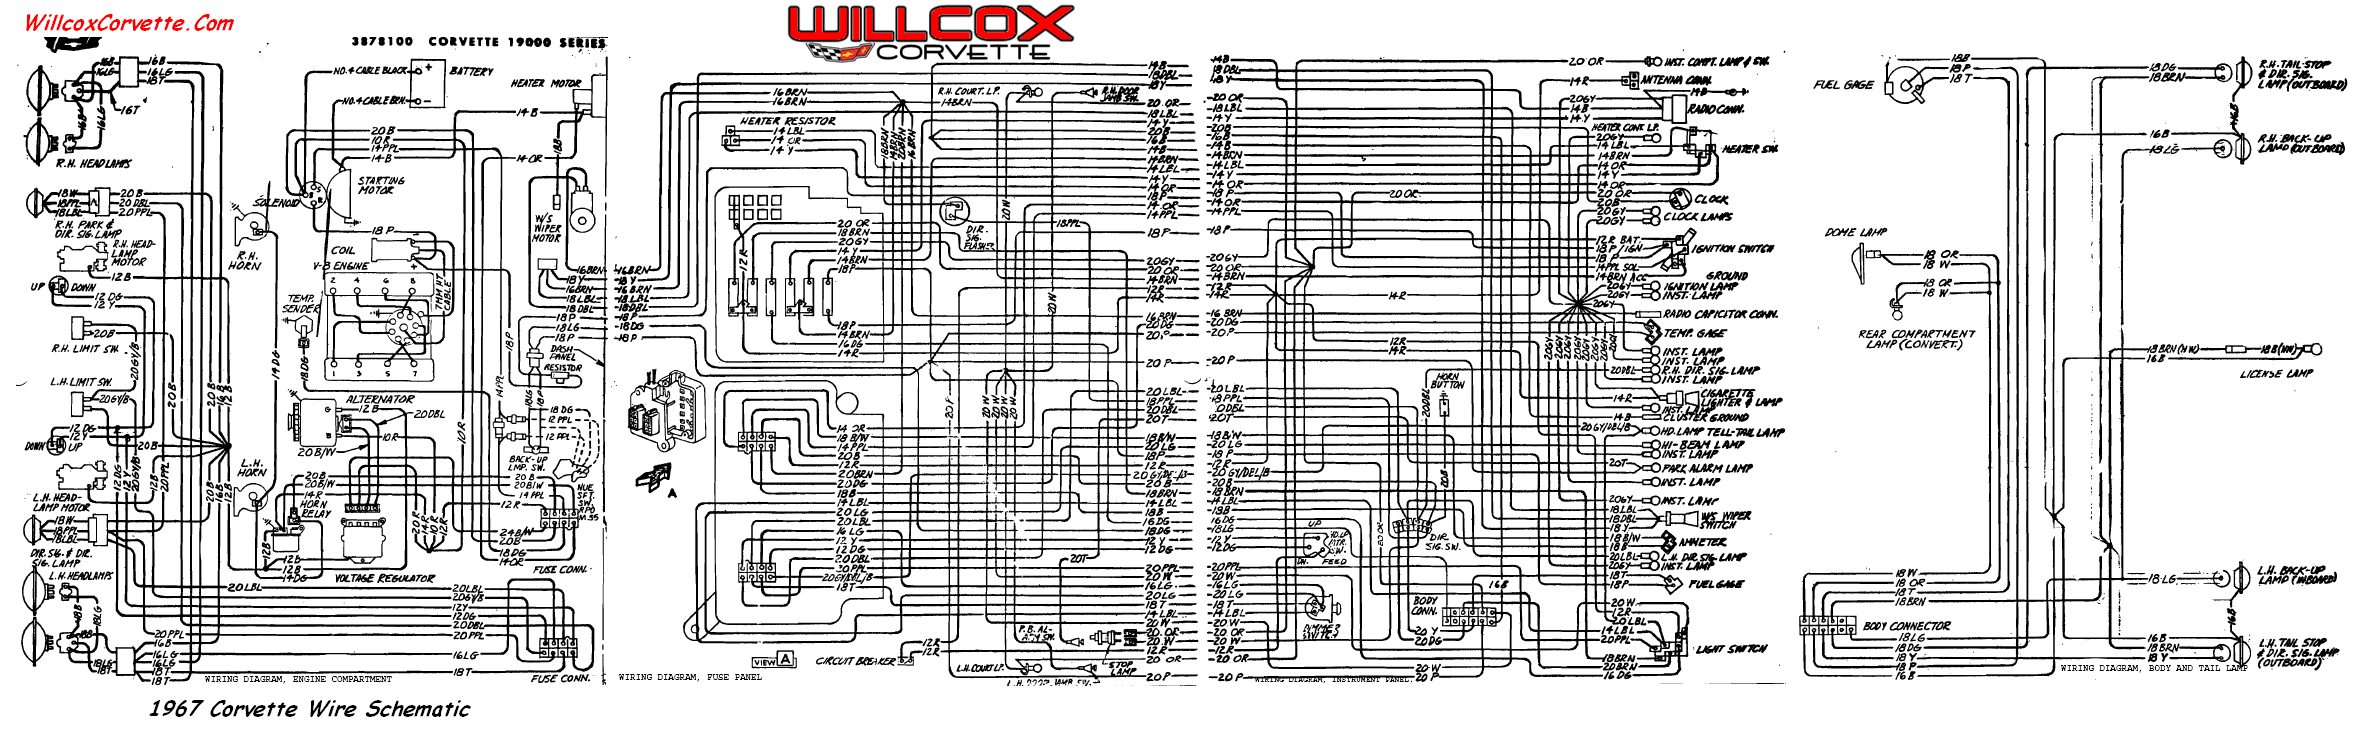 1967 Corvette Wiring Diagram (tracer schematic) | Willcox Corvette,